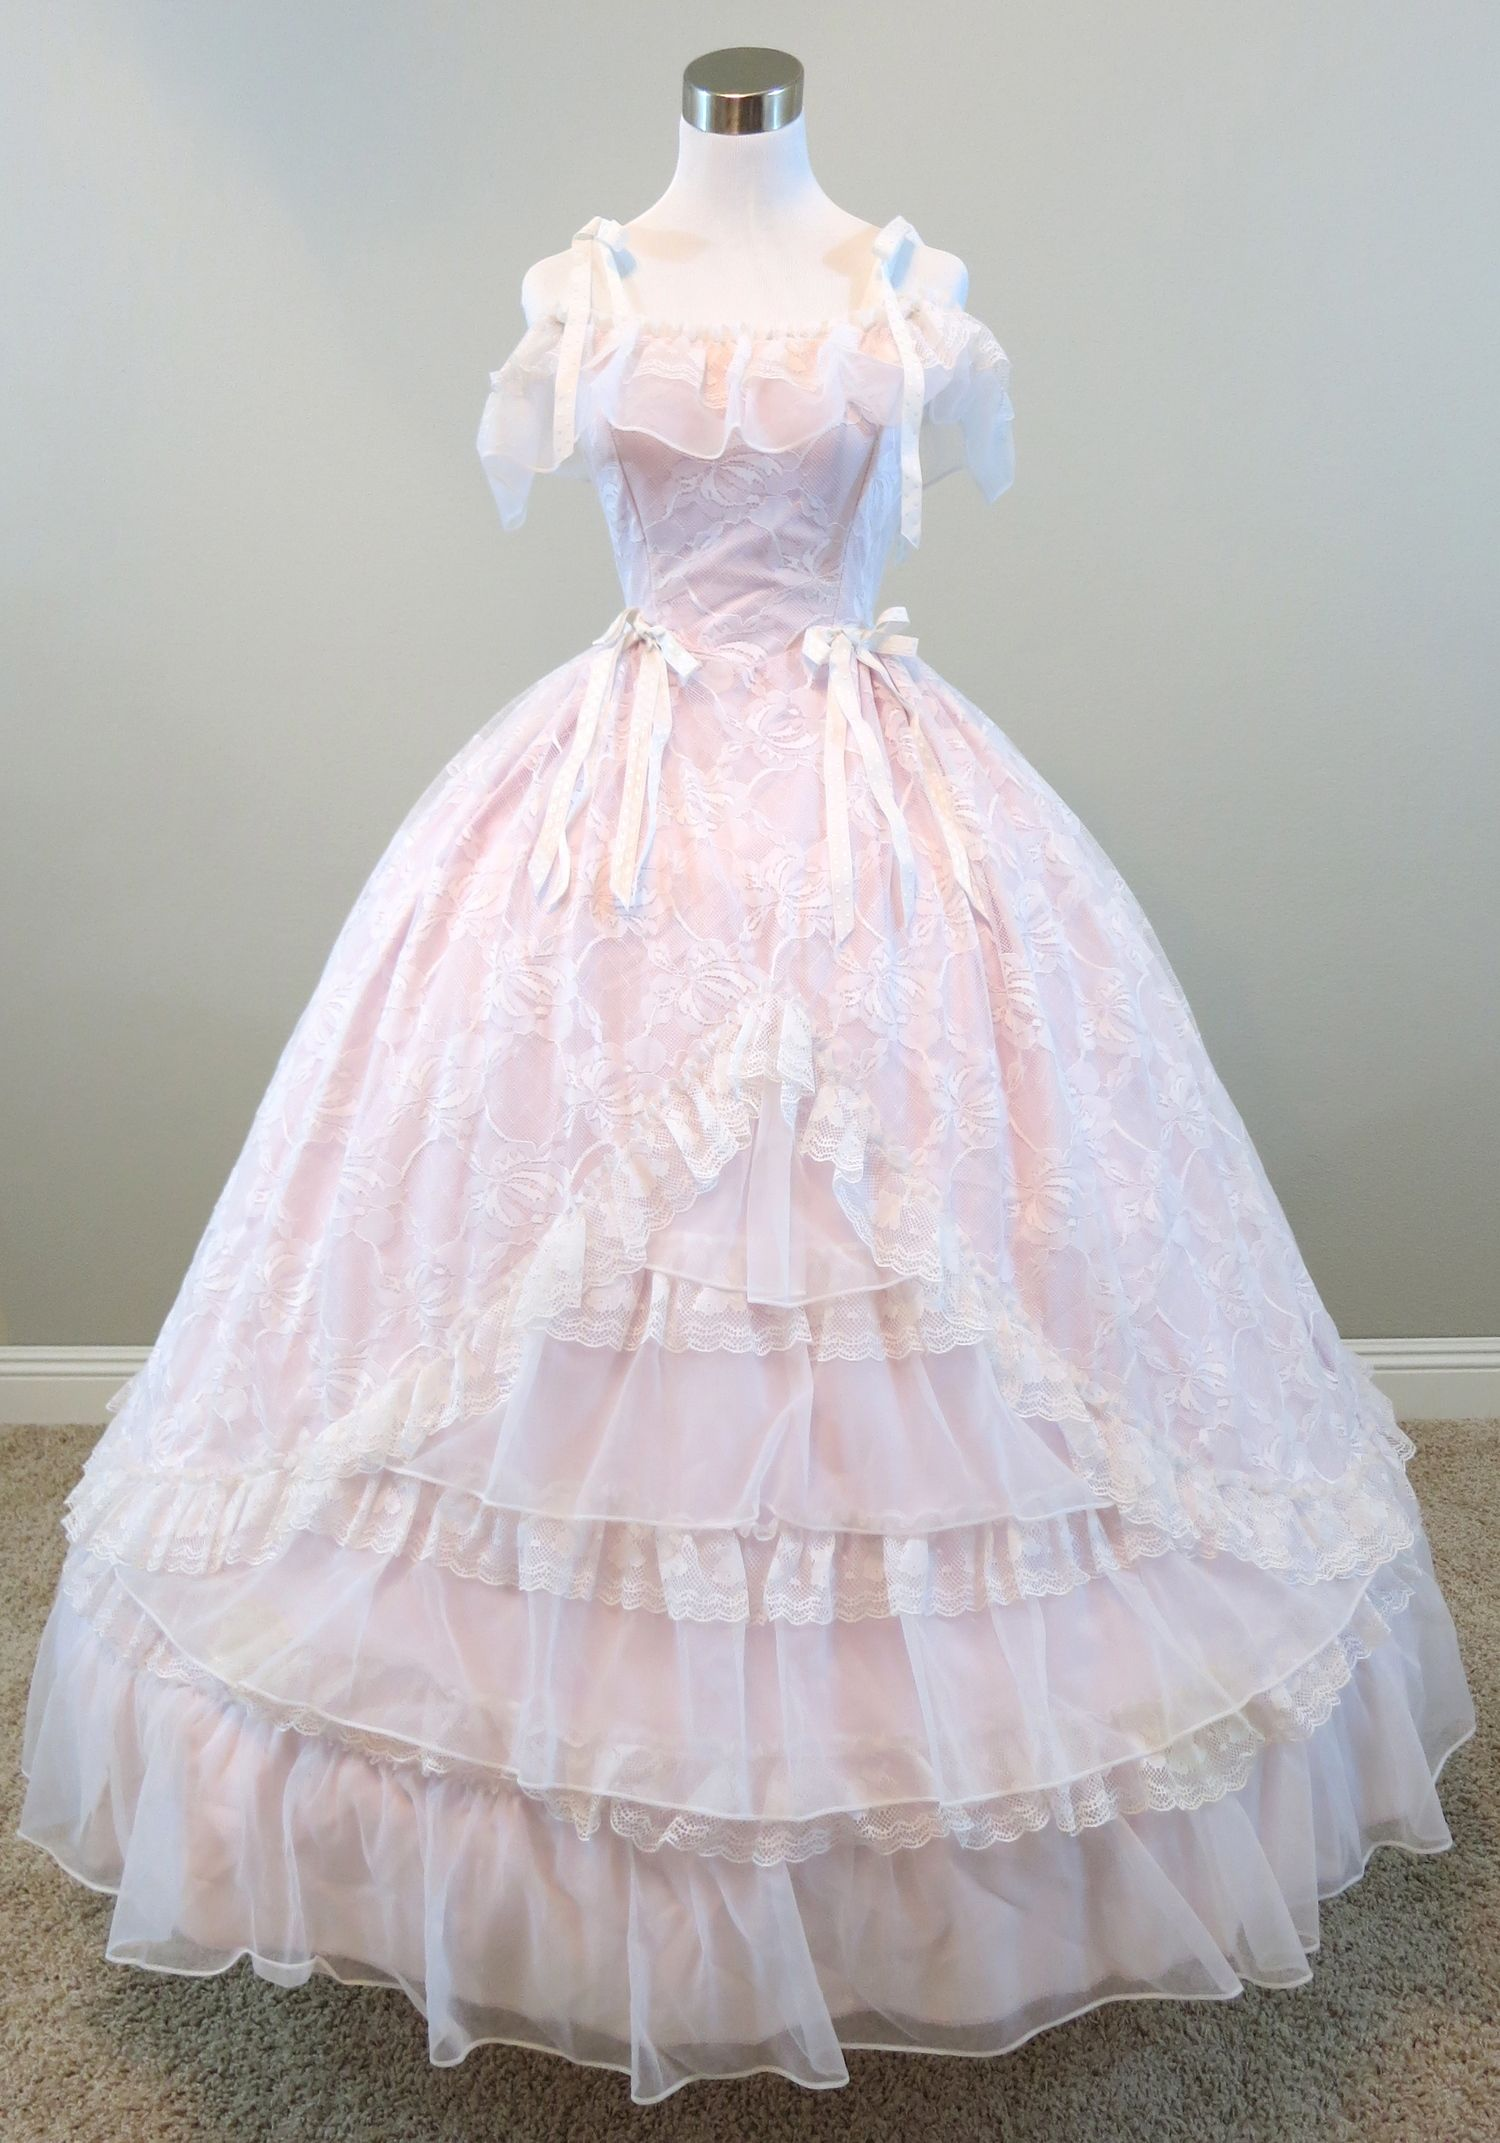 Southern belle ball gown victorian dress remarkable